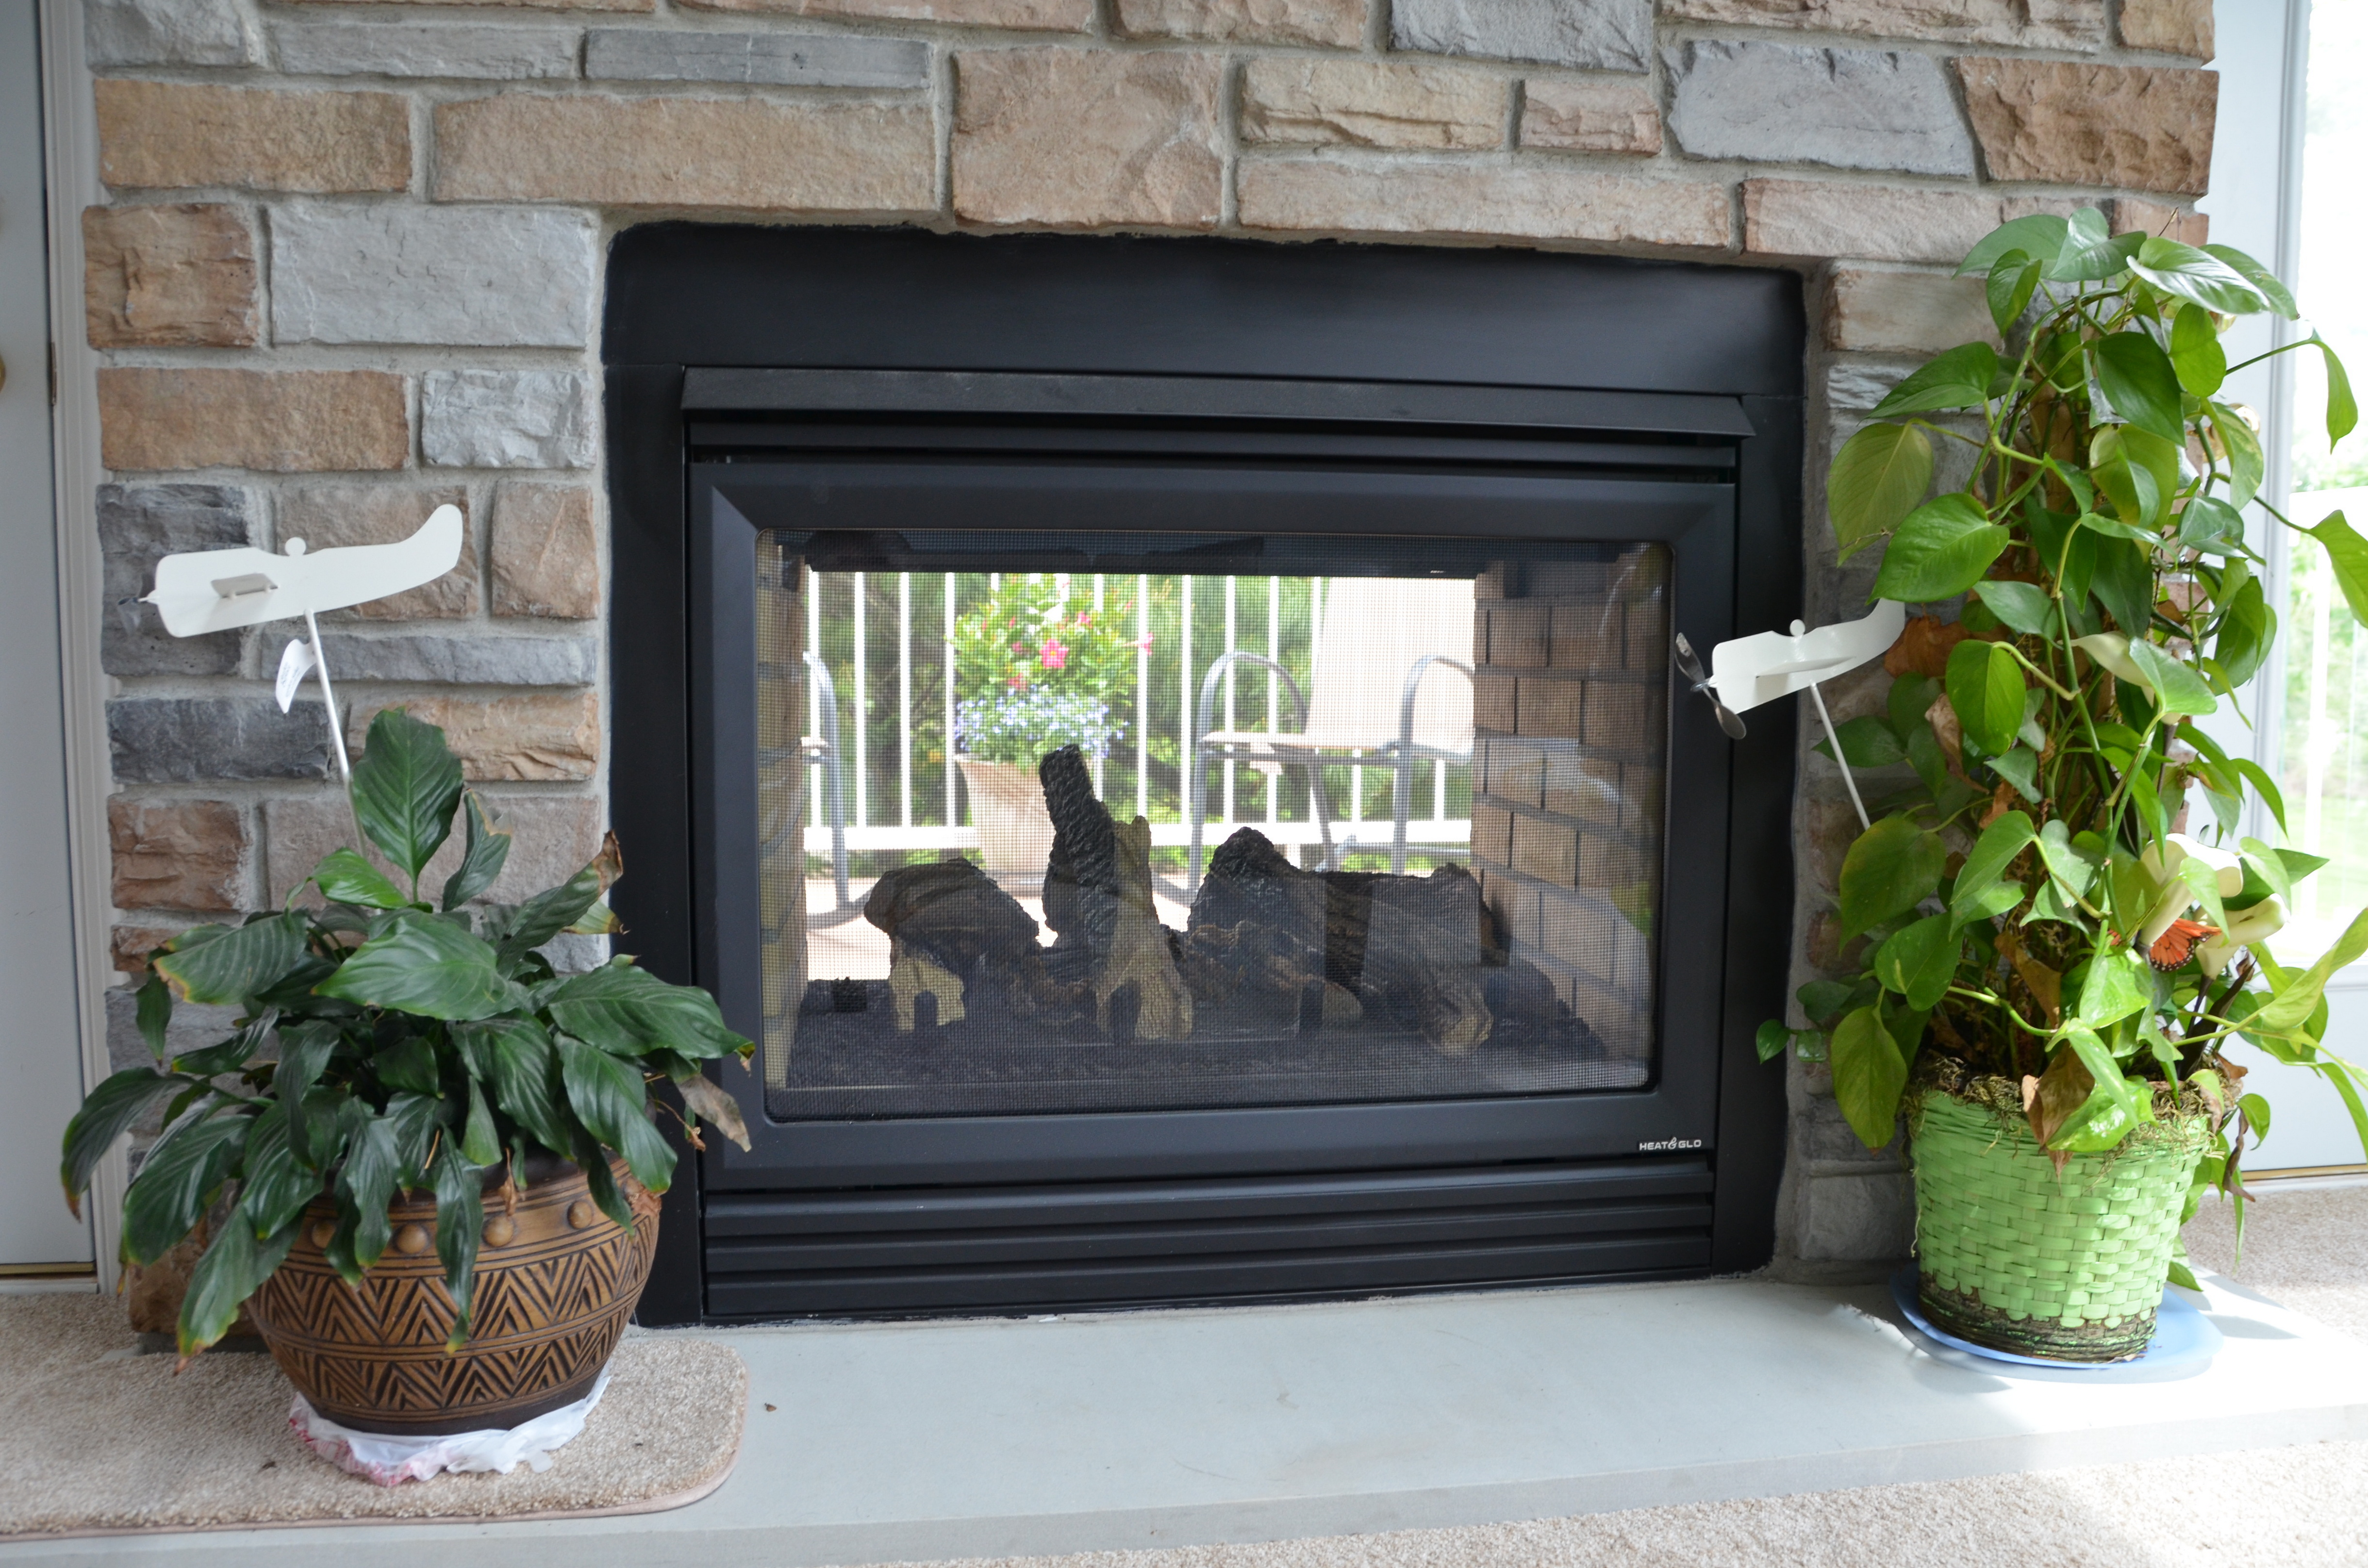 Two-sided fireplace as viewed from inside